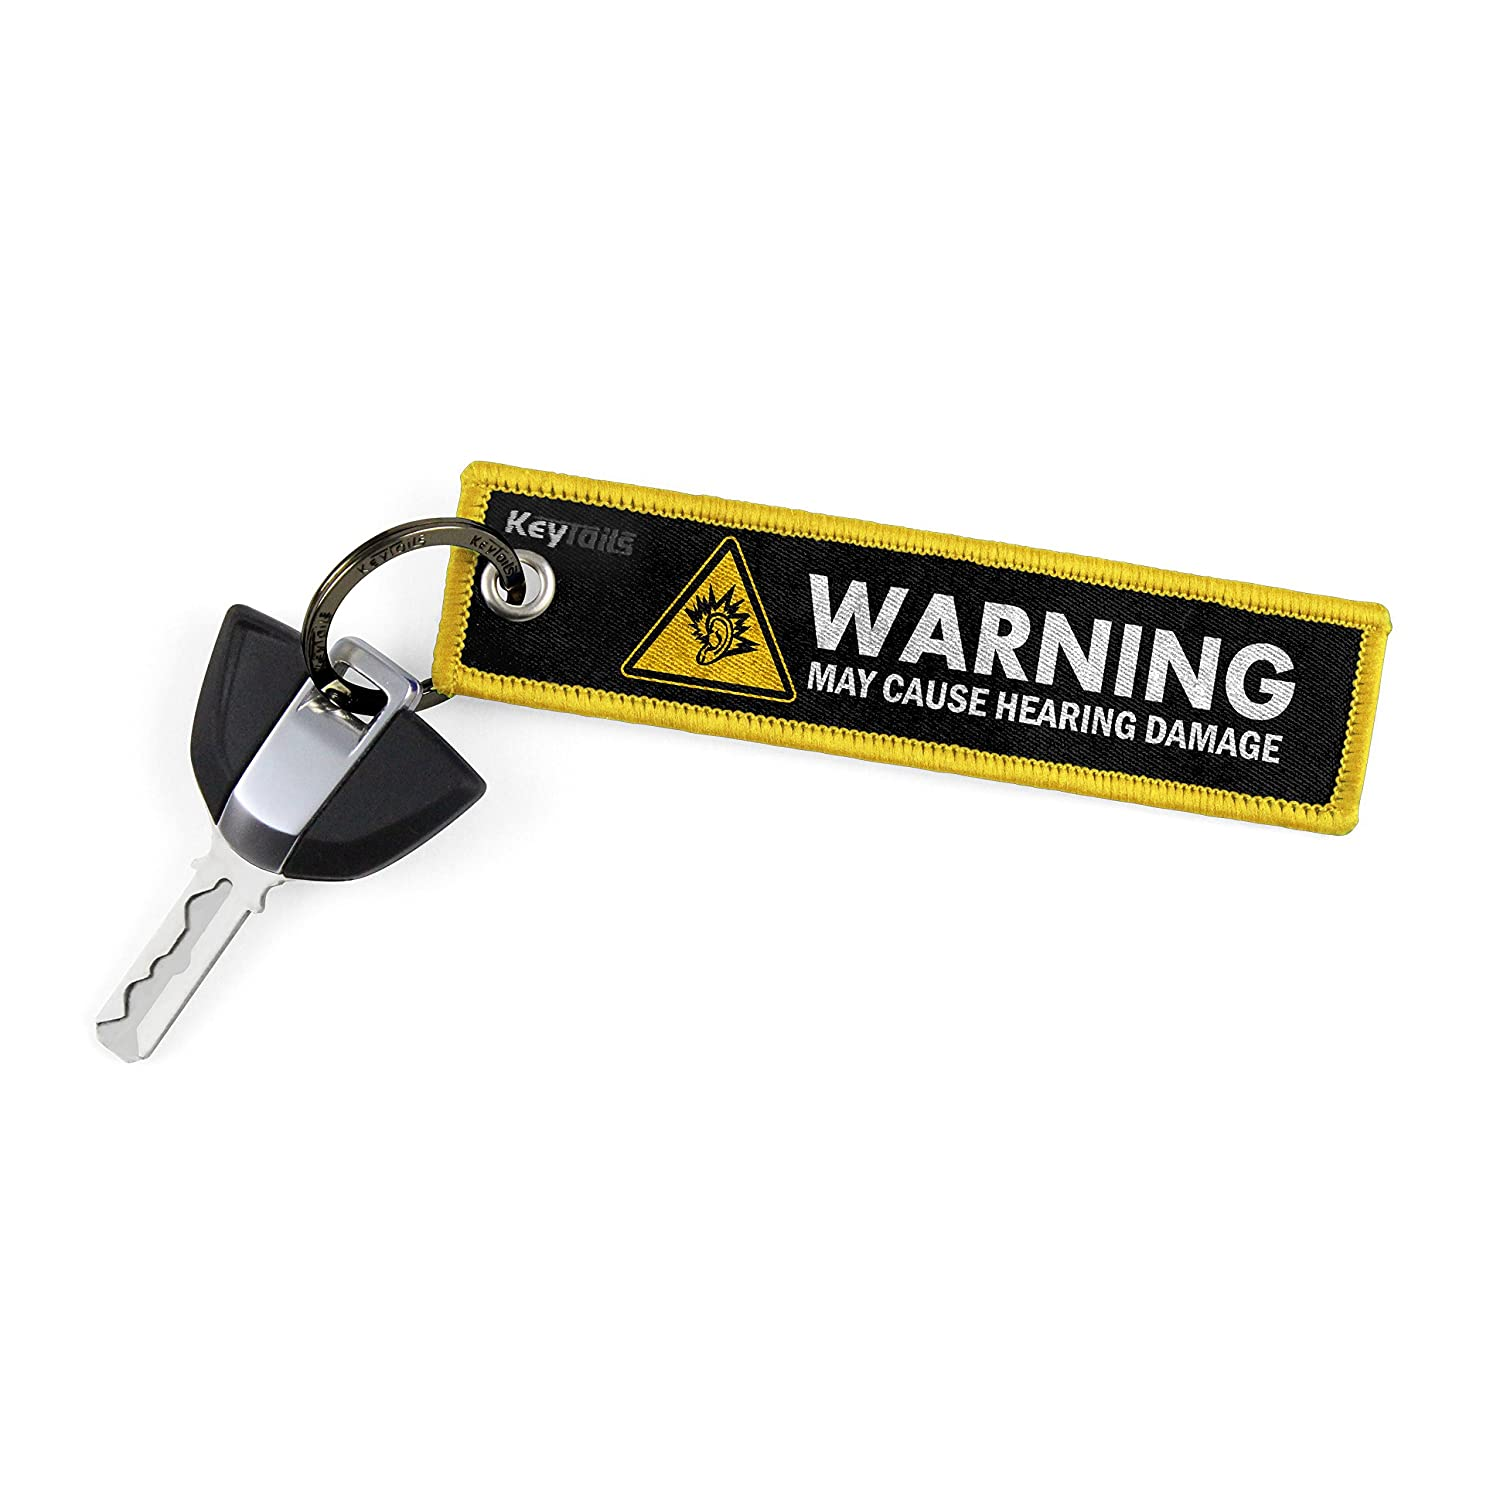 KEYTAILS Keychains, Premium Quality Key Tag Motorcycle, Car, Scooter, ATV, UTV [Warning May Cause Hearing Damage - Yellow] Key Tails